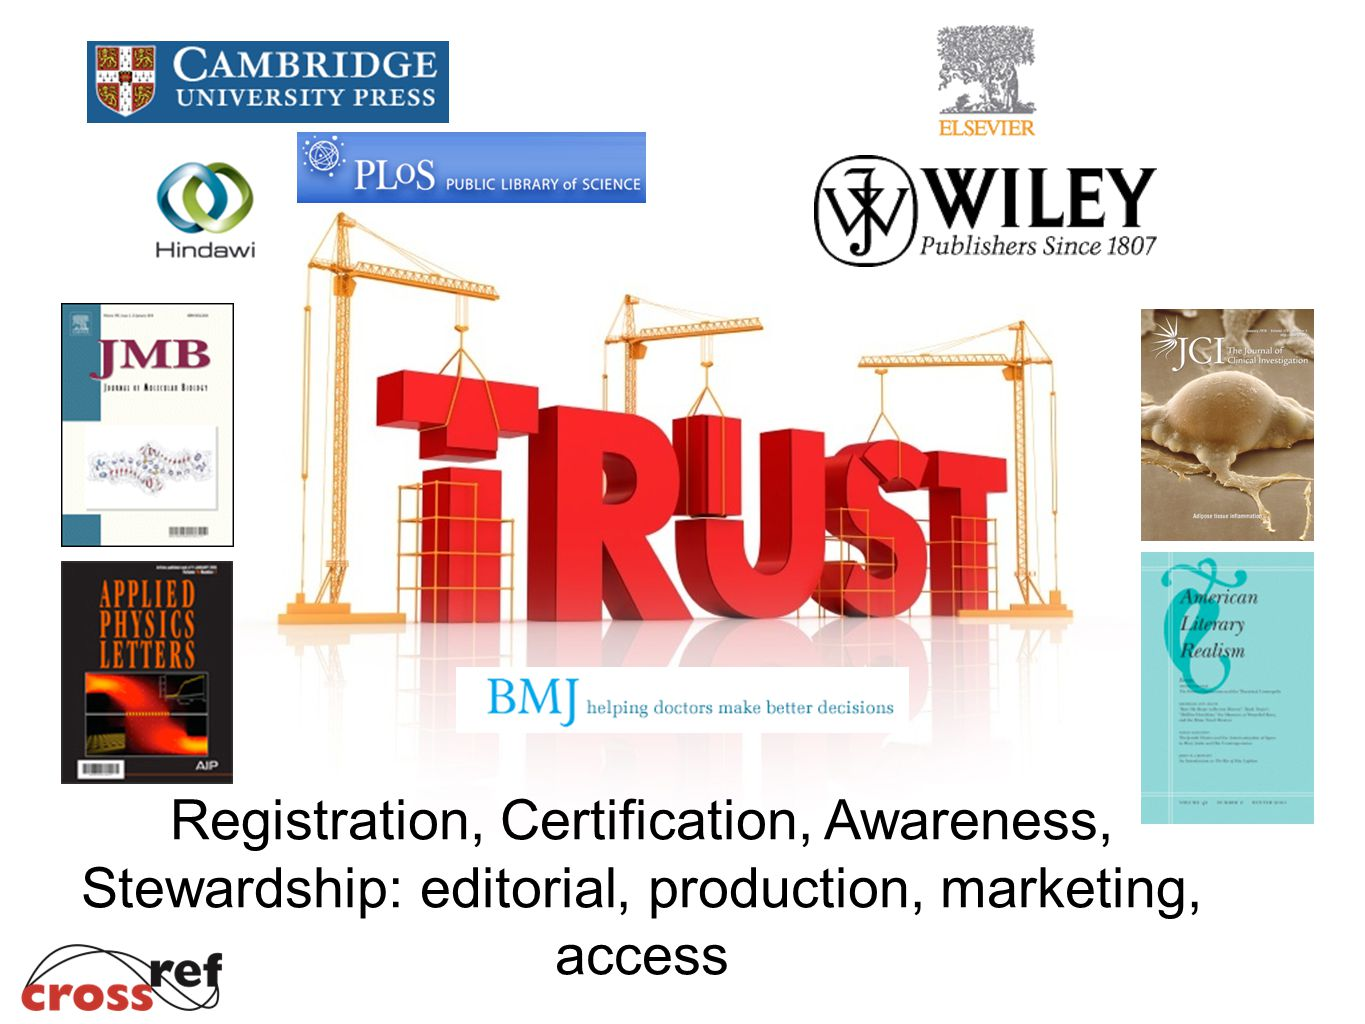 Registration, Certification, Awareness, Stewardship: editorial, production, marketing, access